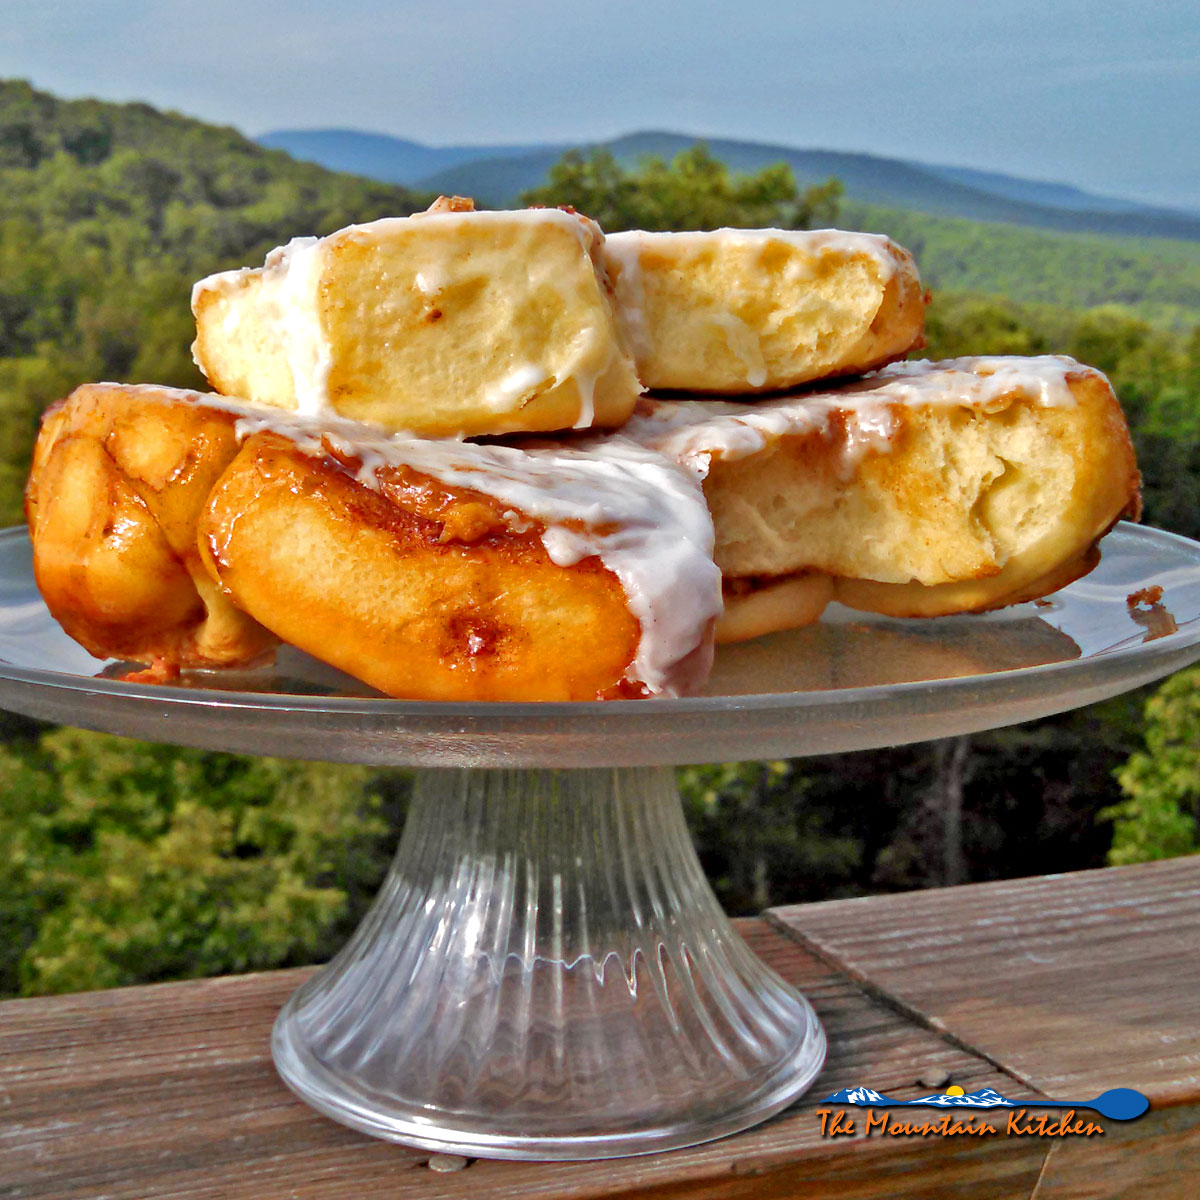 A Sunday breakfast treat, these fluffy, soft, sweet homemade cinnamon rolls smothered in creamy sugar glaze. Guaranteed to bring a smile to anyone's face!